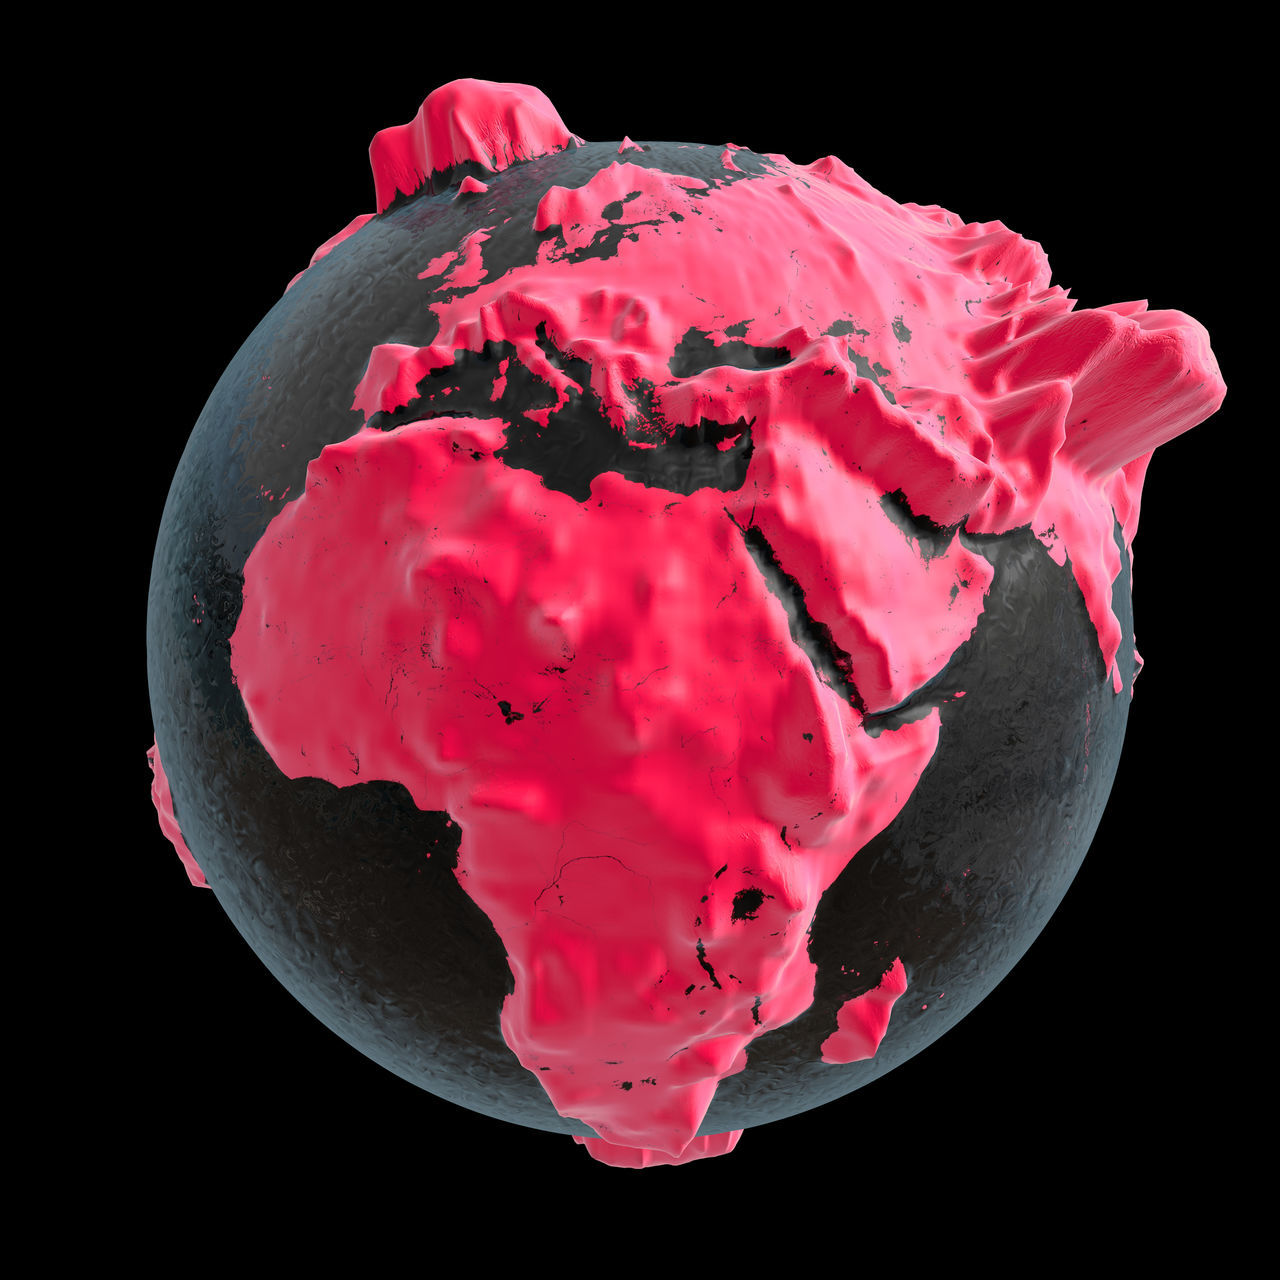 3D rendering: planet earth 3D 3d Rendering Africa Altitude Altitude Profile ASIA Continent Continents Earth Europe Global Globe Pink Pink Color Planet Planet Earth Rendering Terrestrial Globe World World-wide Worldwide